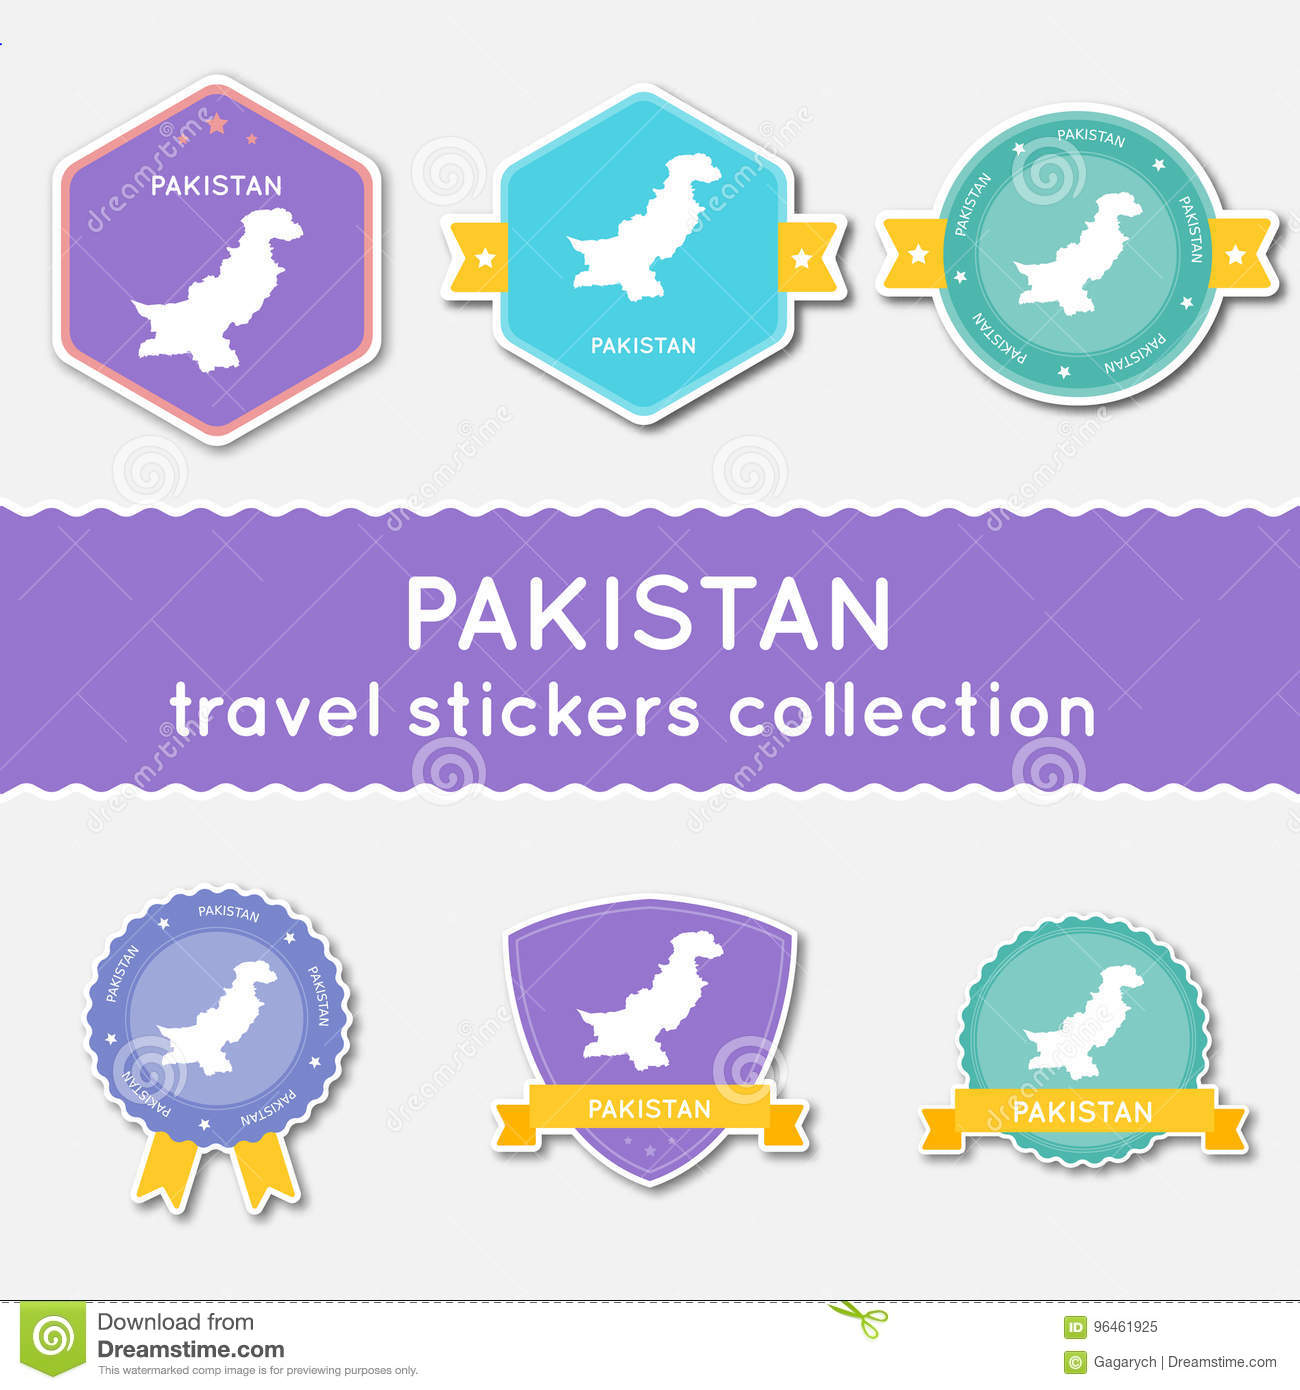 Pakistan travel stickers collection